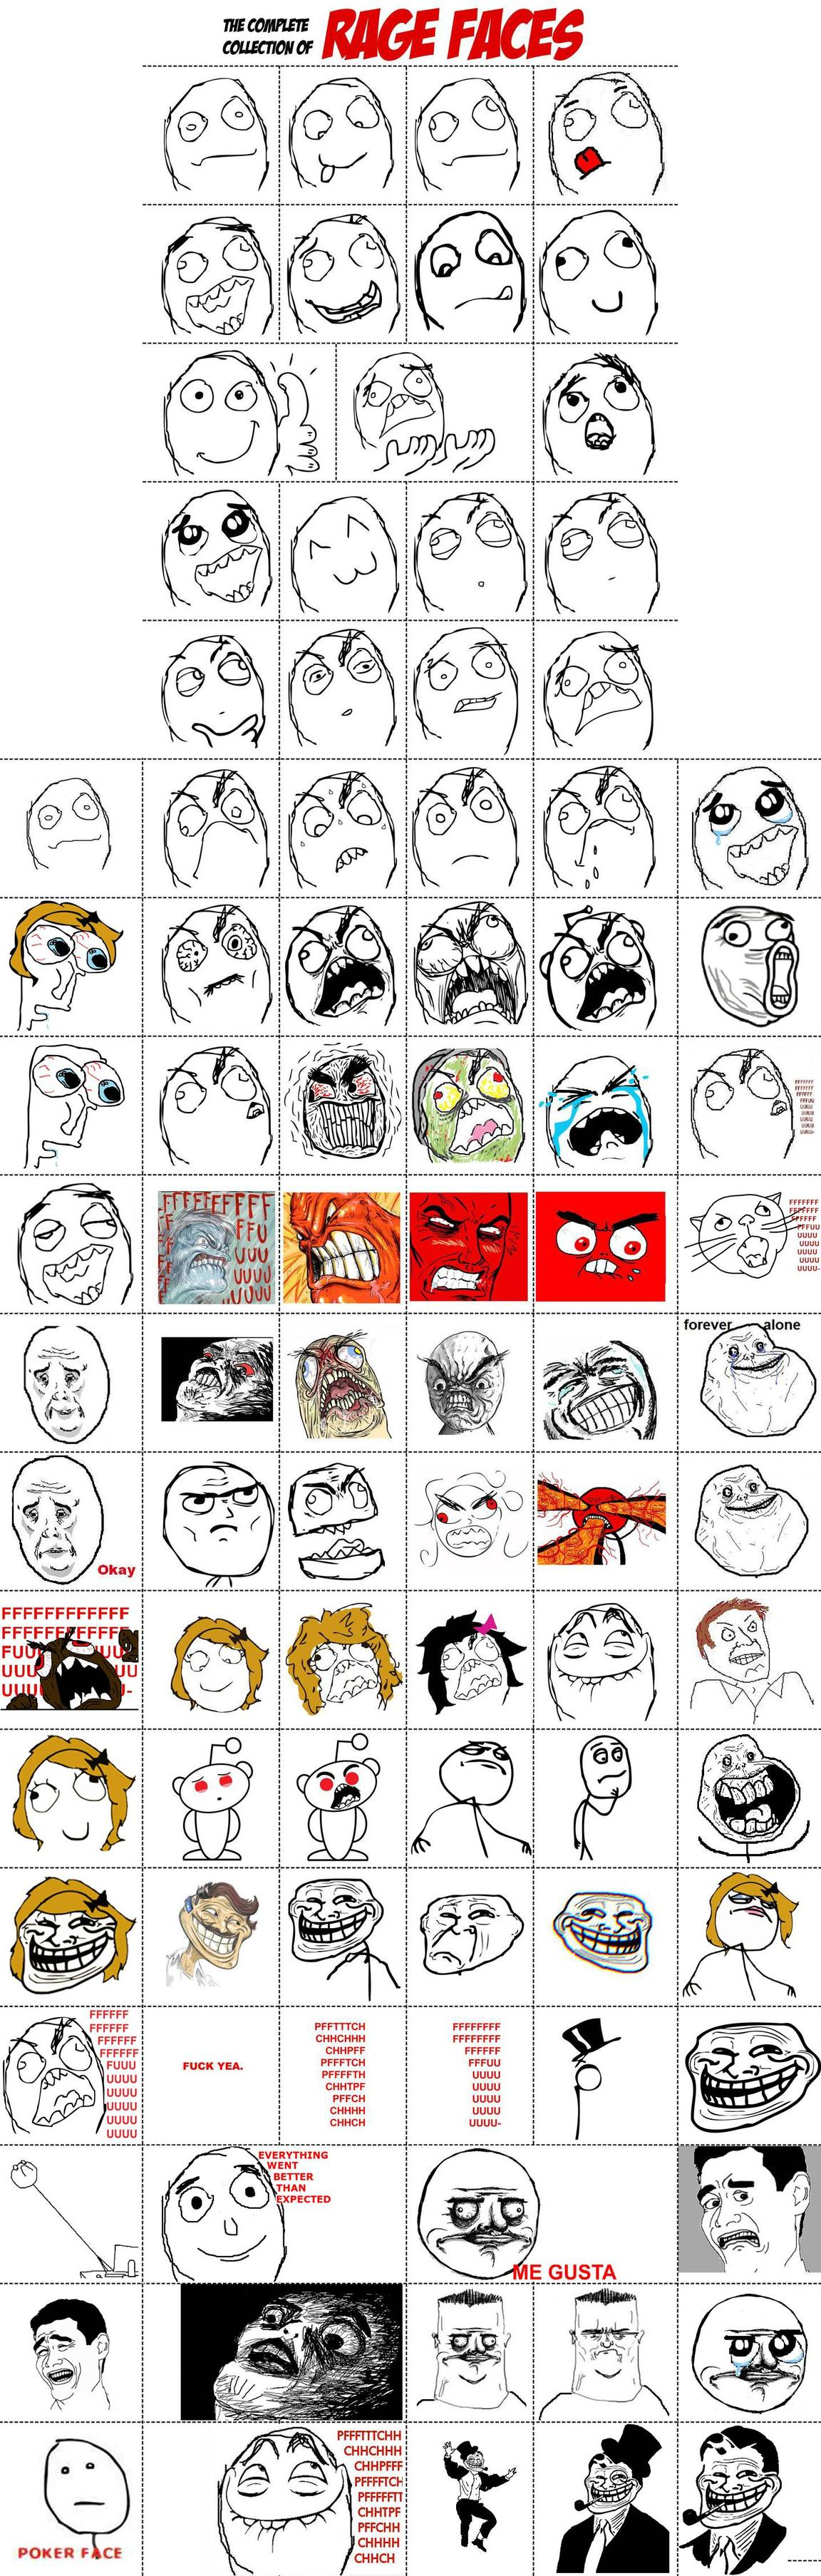 rage faces complete collection